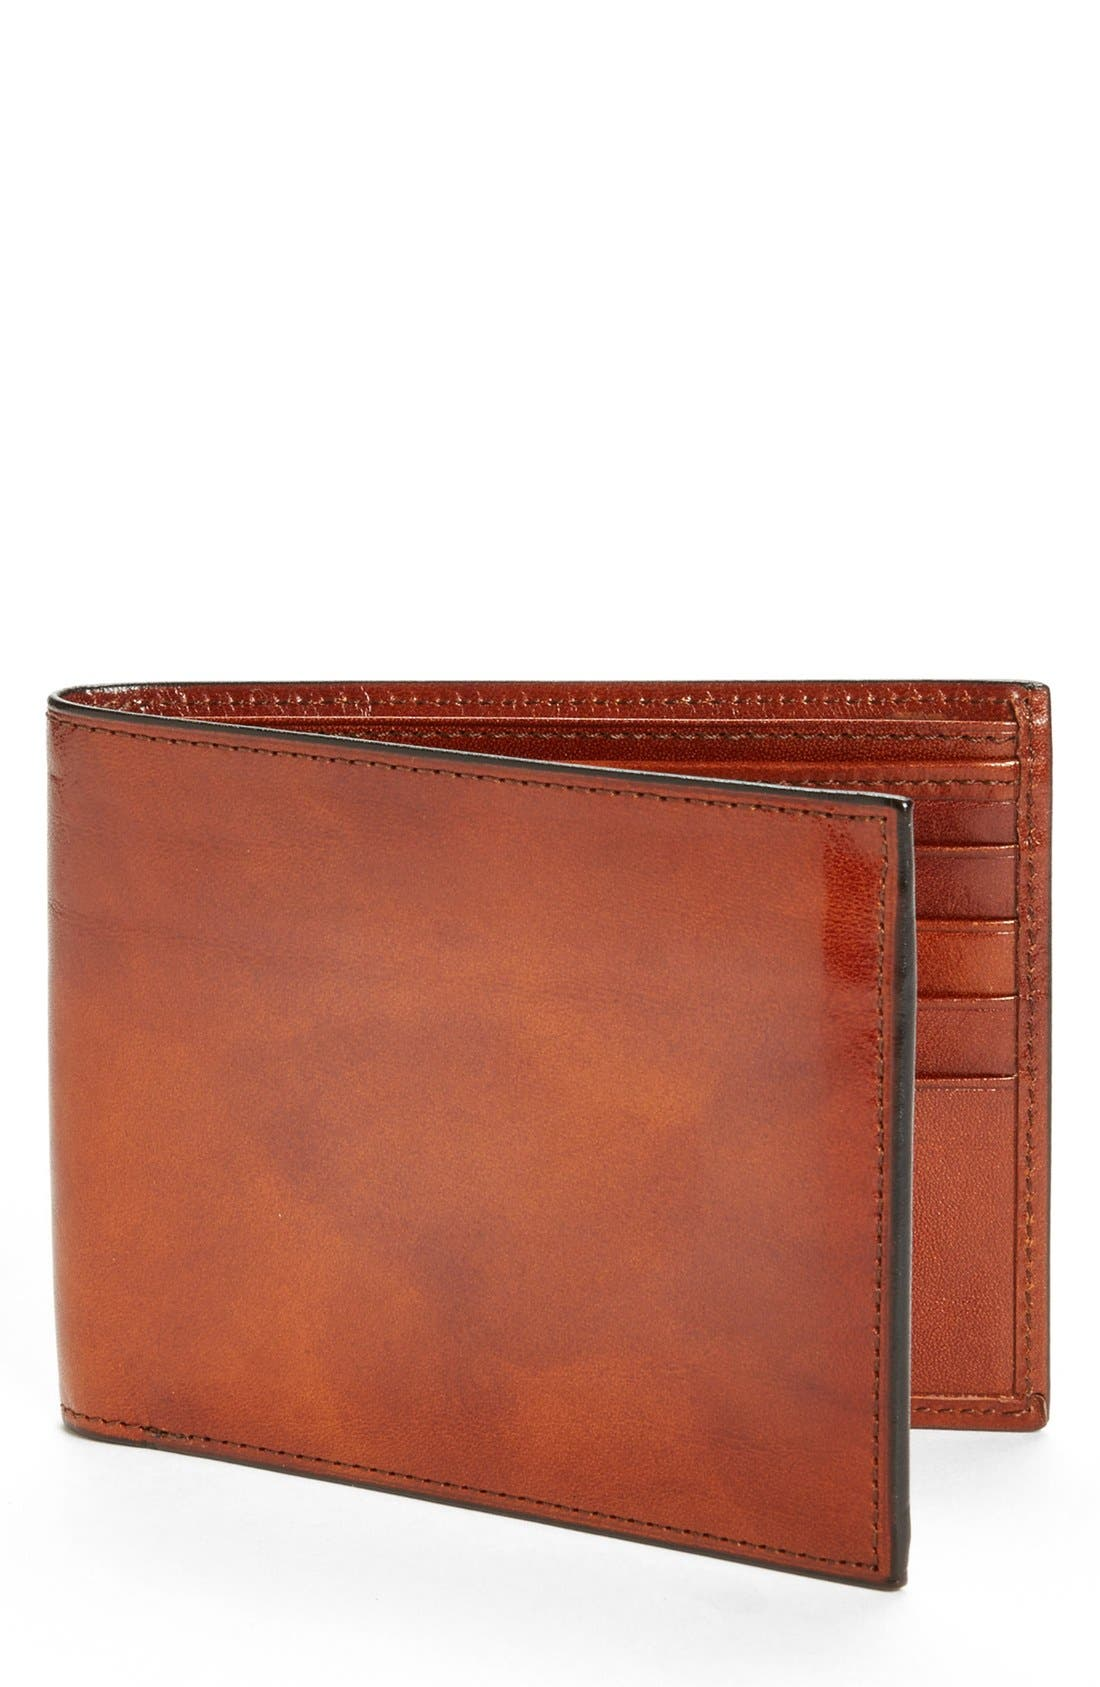 ID Flap Leather Wallet,                             Main thumbnail 1, color,